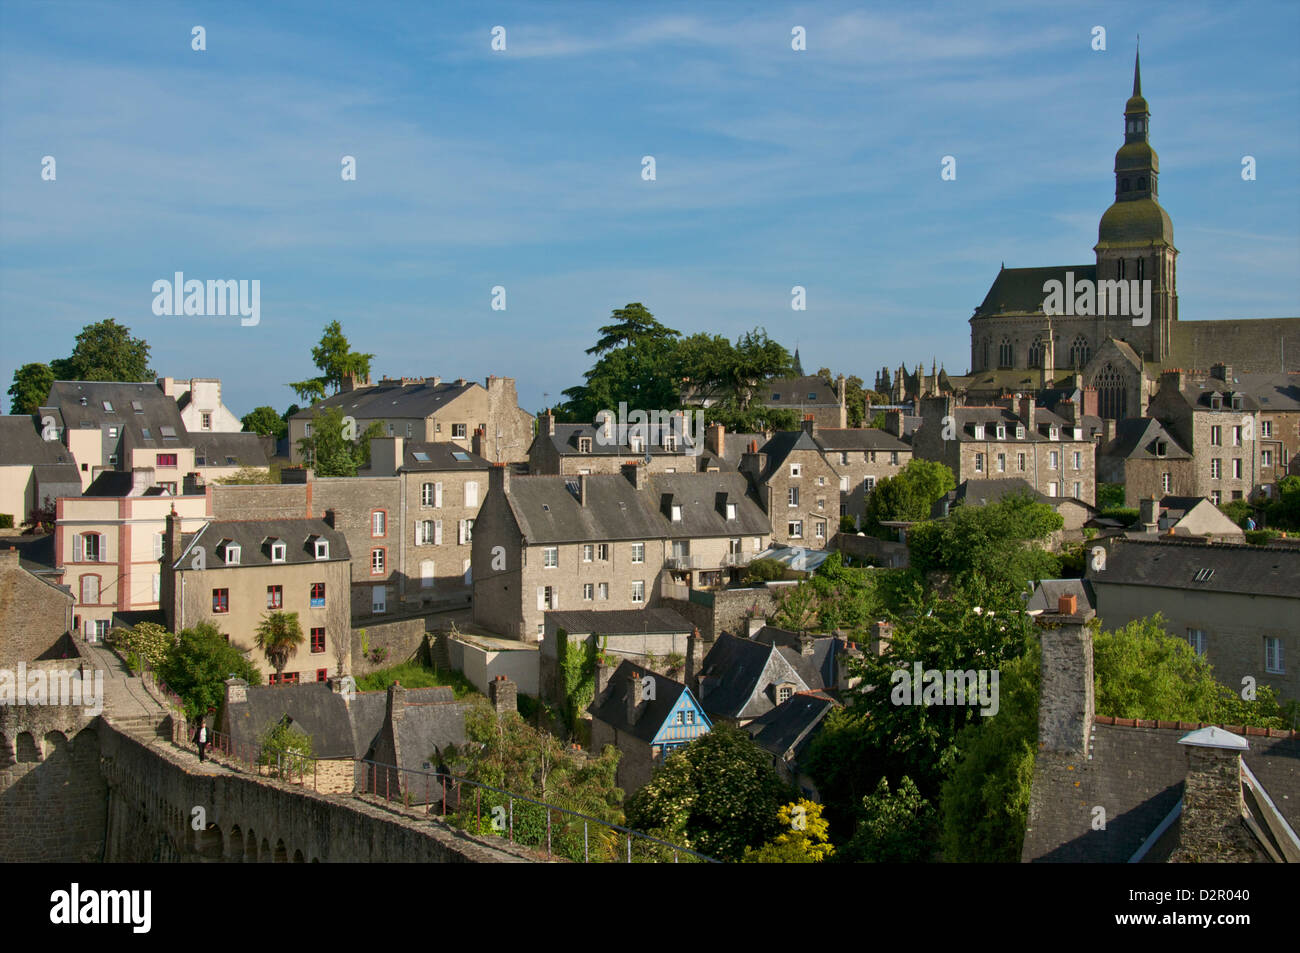 Old town houses and gardens, city walls, and St. Sauveur Basilica, Dinan, Brittany, France, Europe - Stock Image